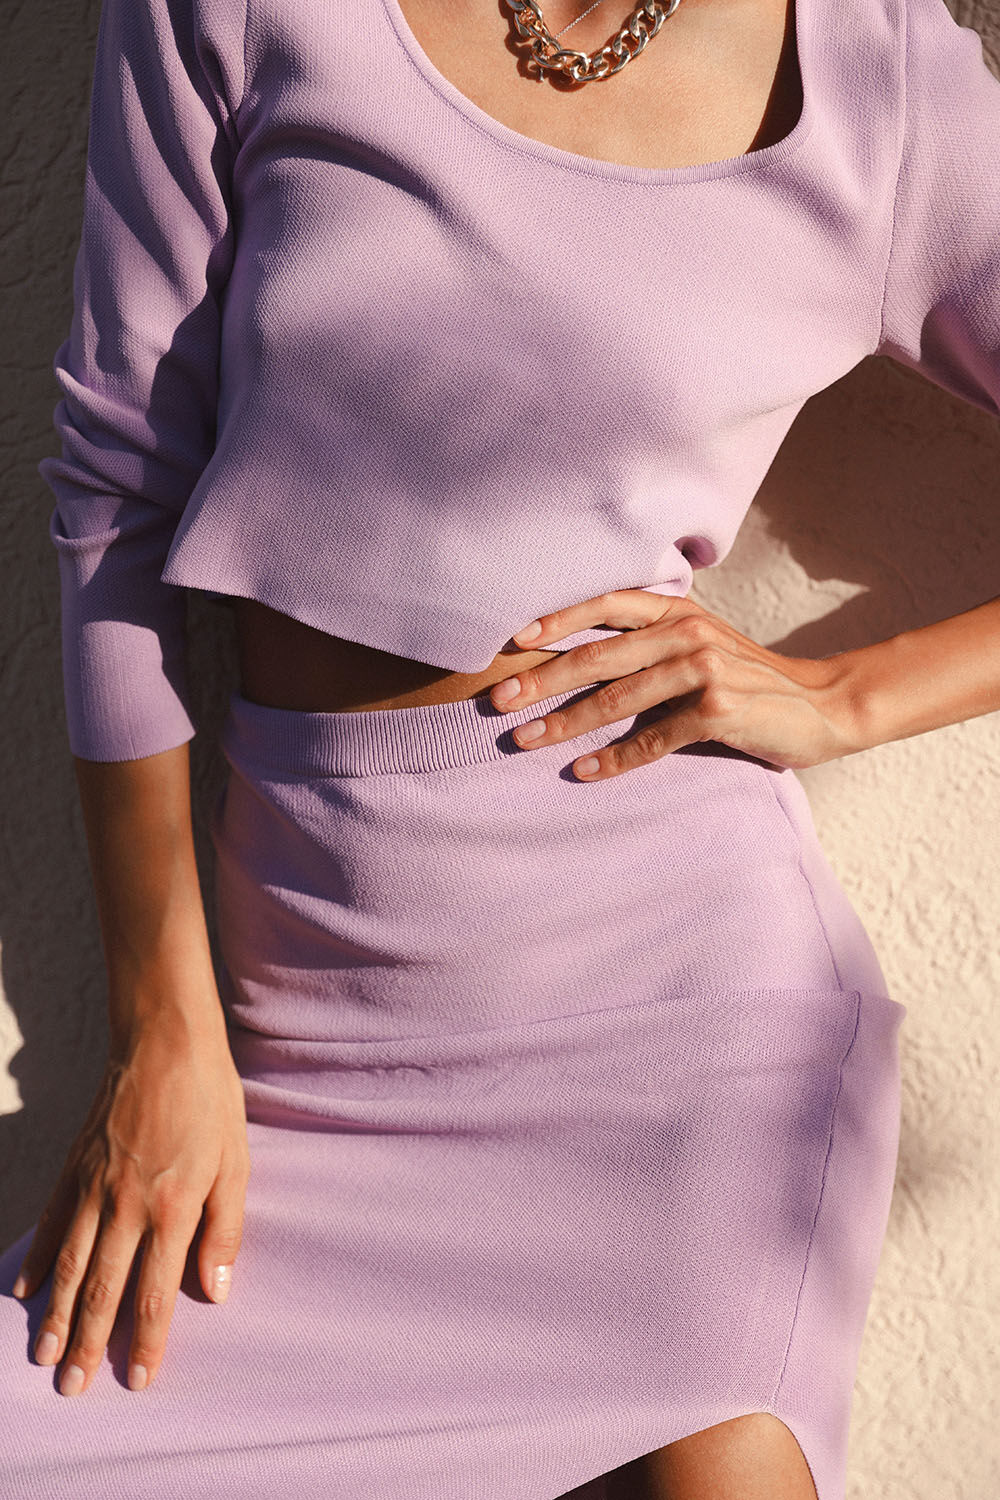 LONG SLEEVE CROP KNIT TOP in colour GRAY LILAC